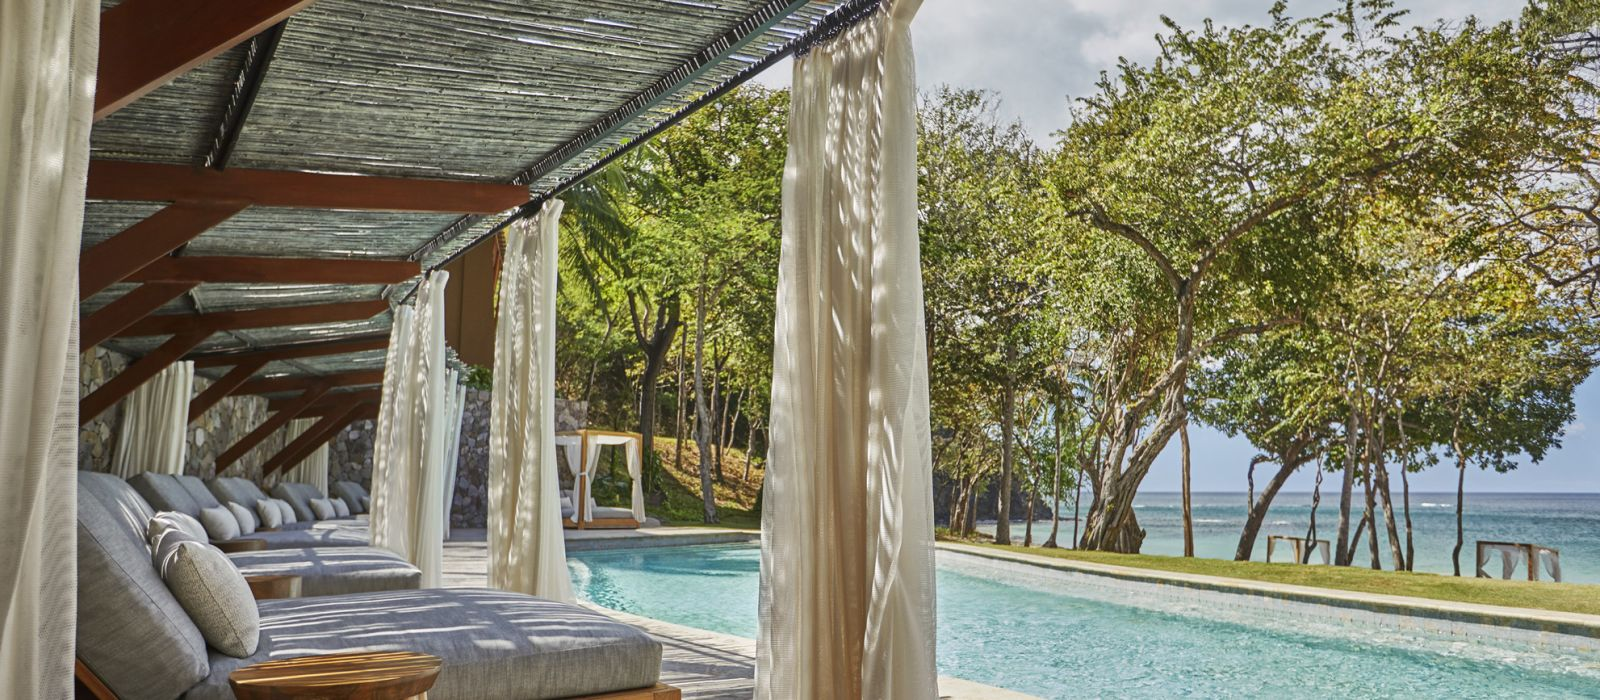 Hotel Four Seasons Resort Papagayo Costa Rica